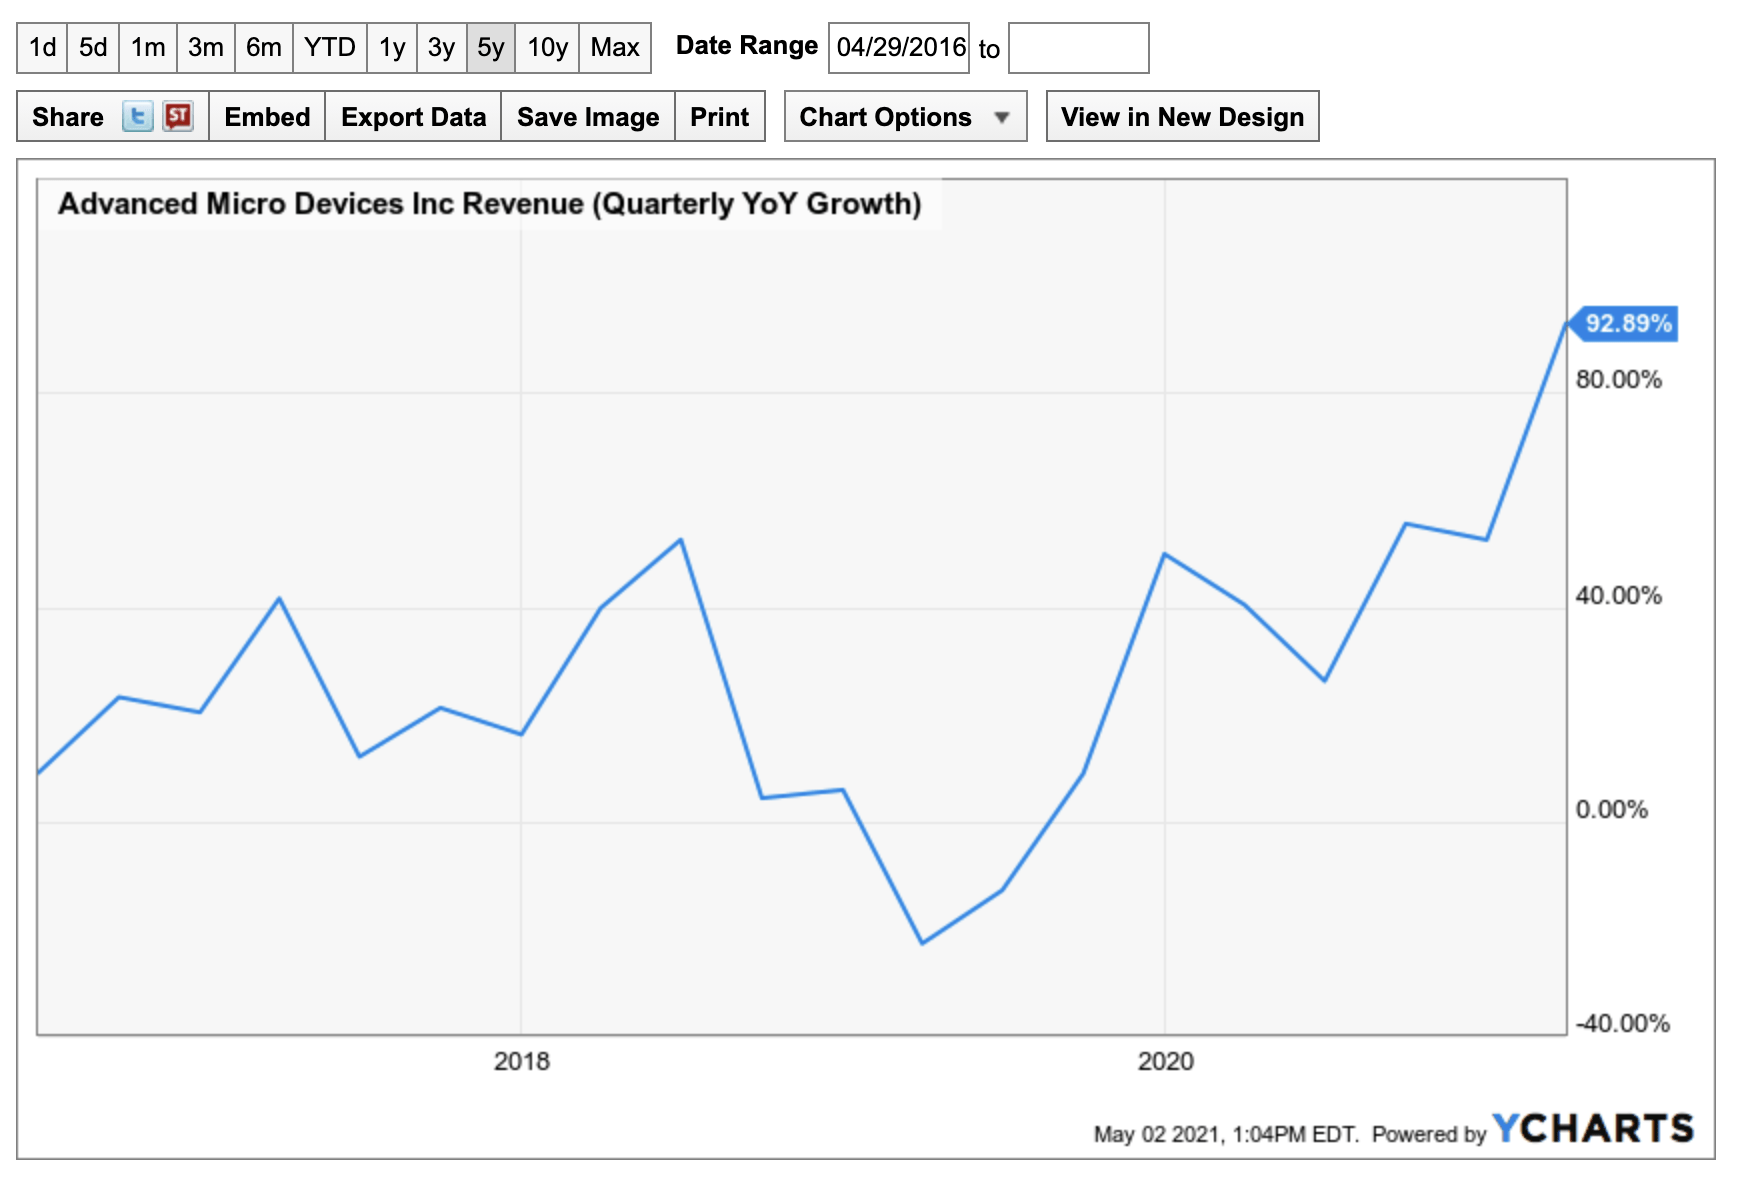 AMD sales revenue growth chart 5 years